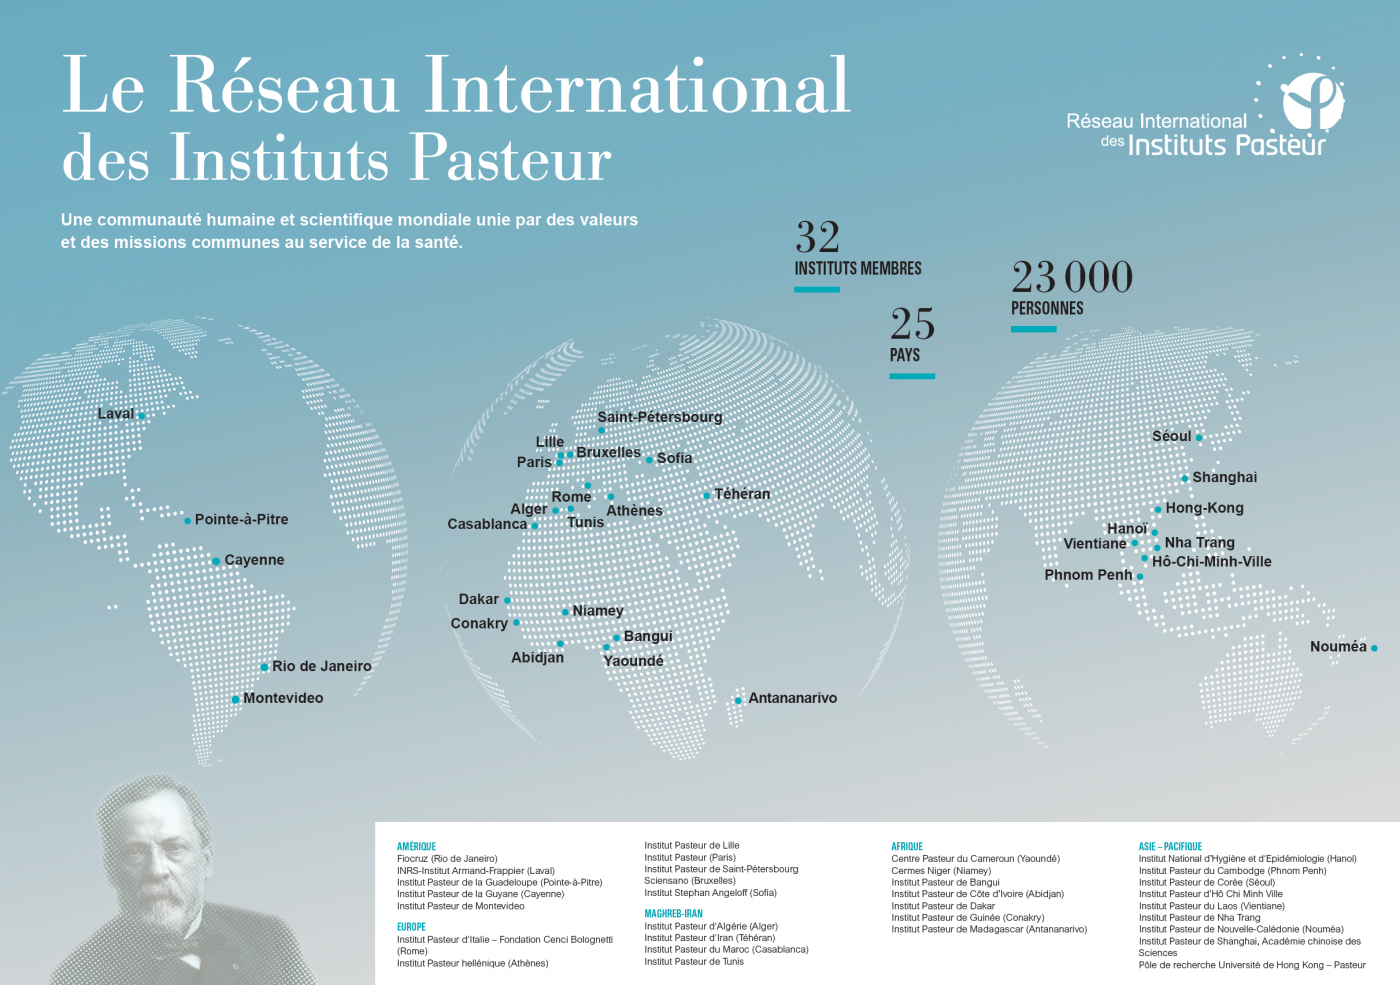 Carte du Réseau International des Instituts Pasteur